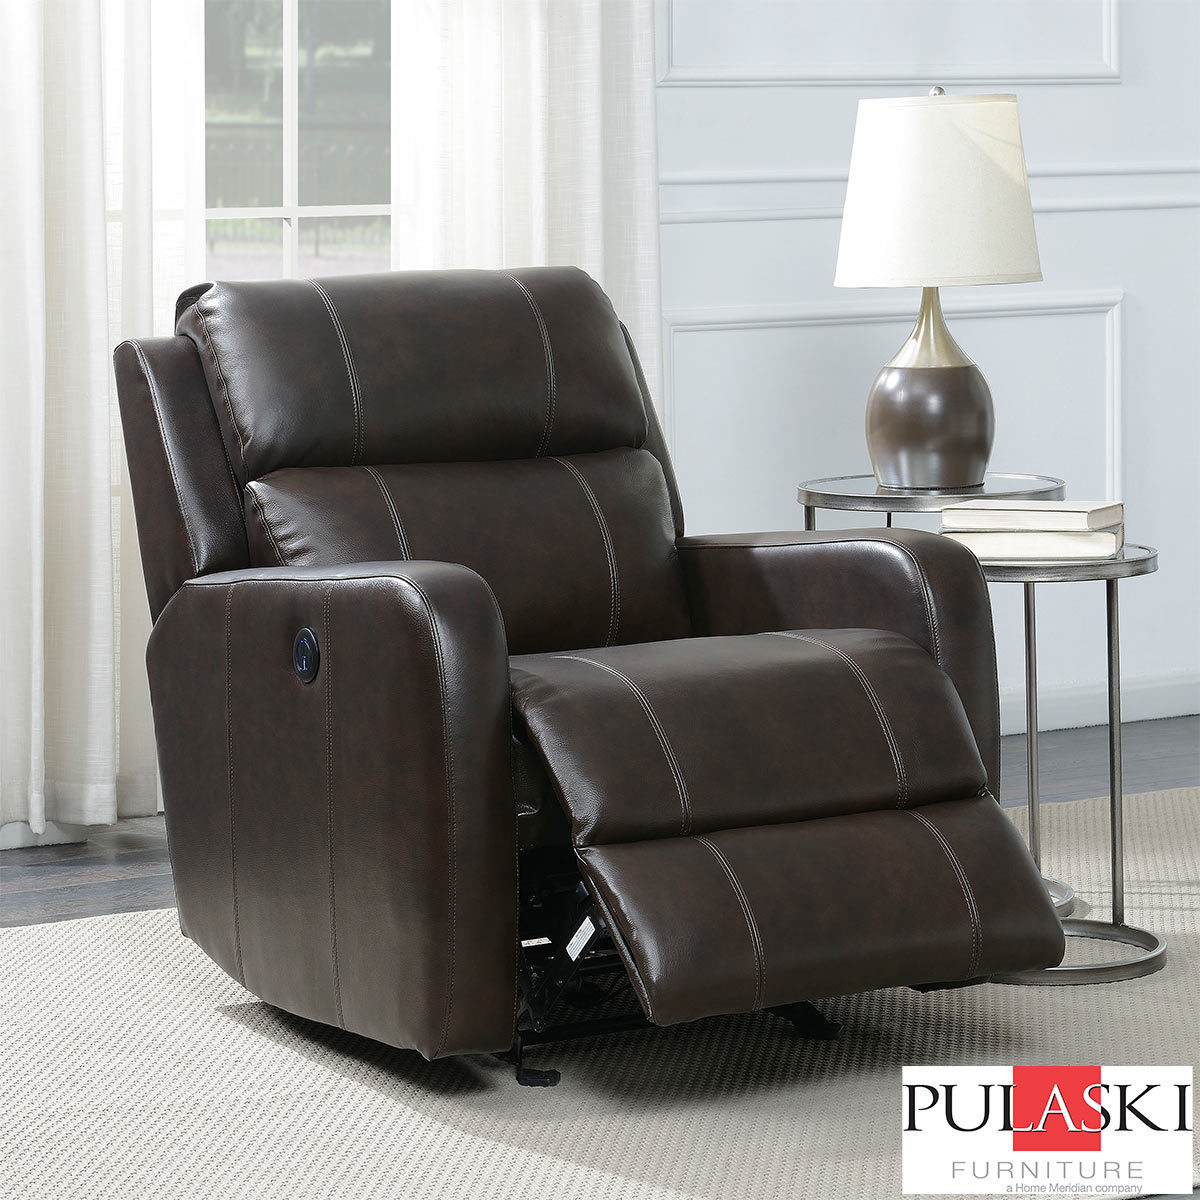 Brown Leather Chairs Pulaski Brown Leather Power Glider Recliner Chair Costco Uk